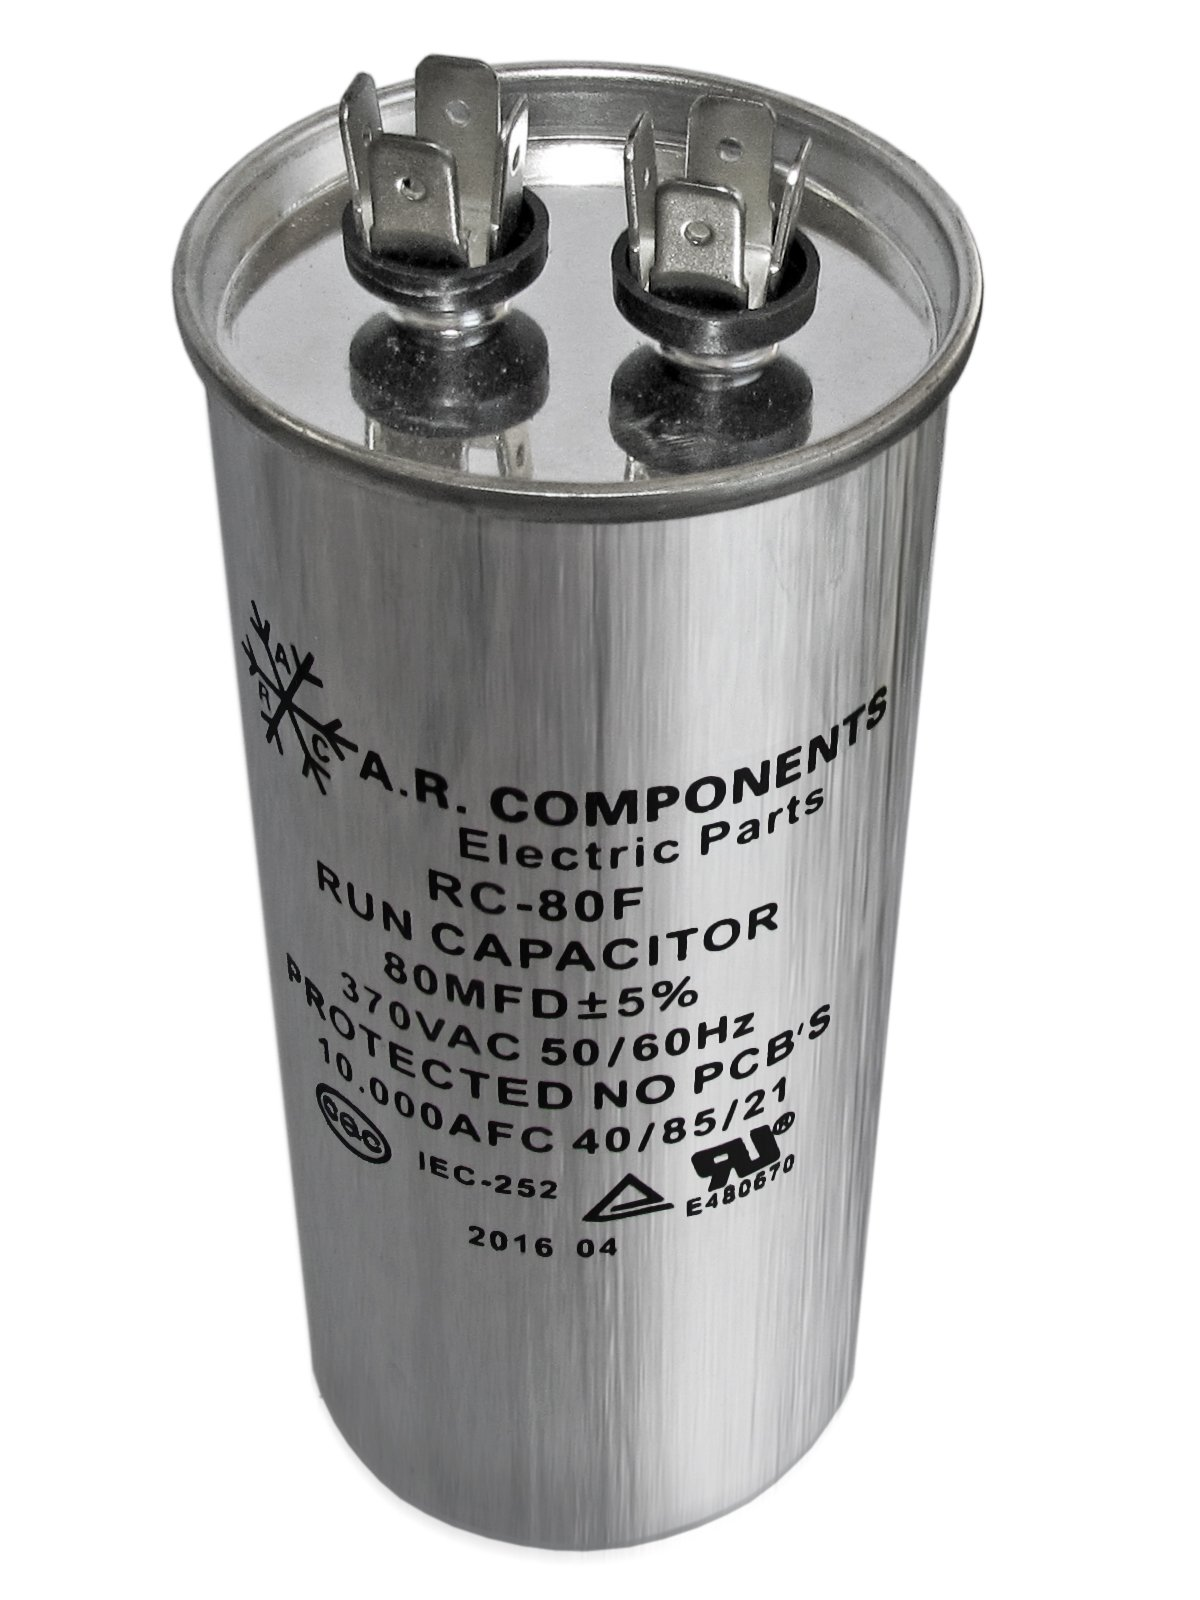 RUN CAPACITOR 80 MFD 370 VAC ROUND CAN. UL Certified. Pack of (1)